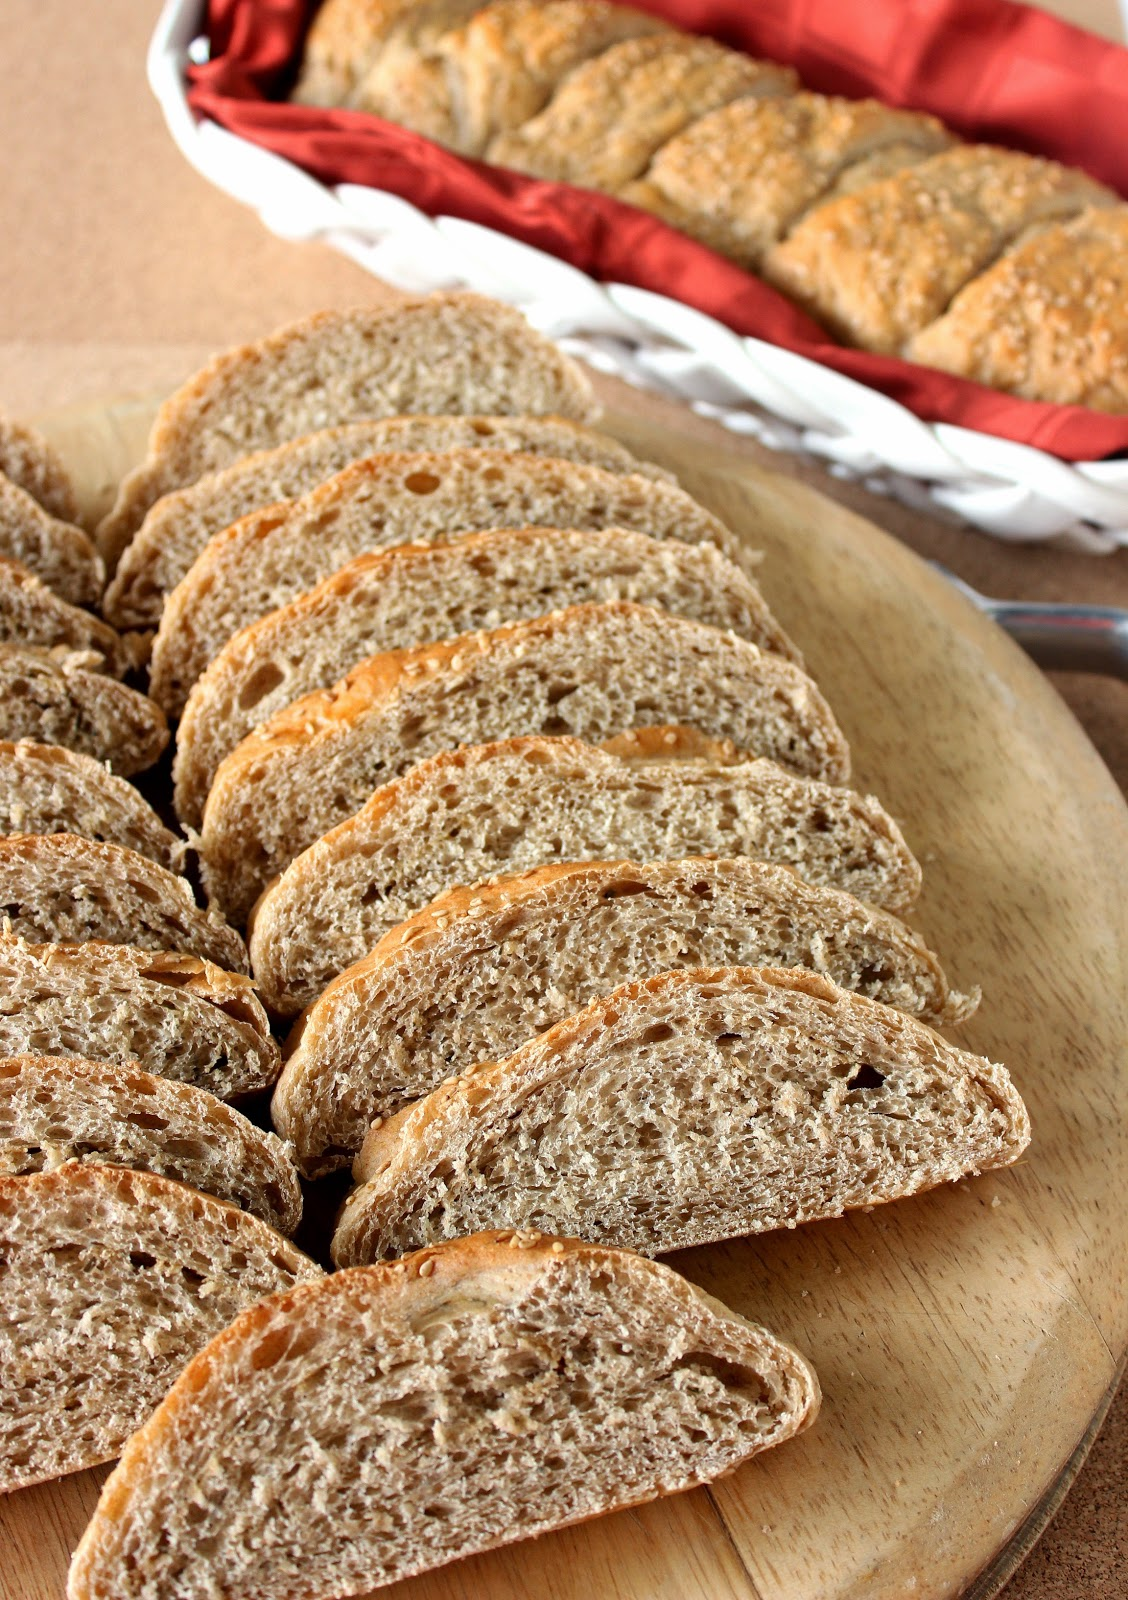 No-Rise Whole Wheat French Bread has a wonderful texture, flavor and is super easy if you're new to baking homemade bread.